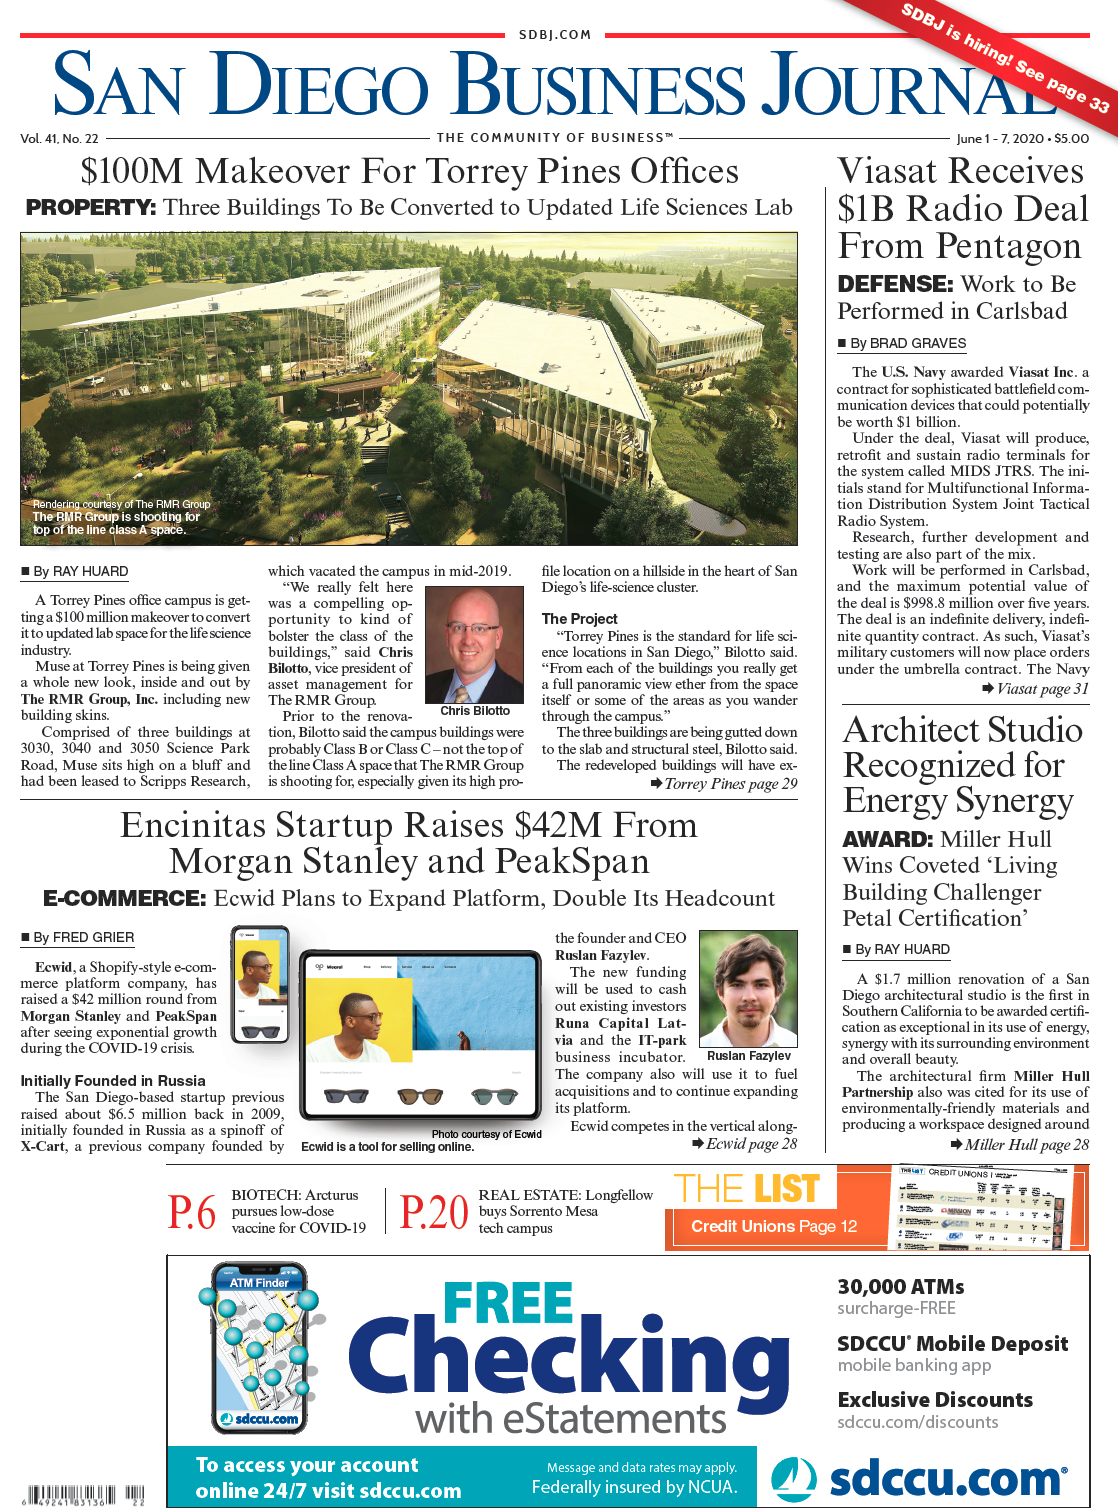 SDBJ Digital Edition June 1, 2020